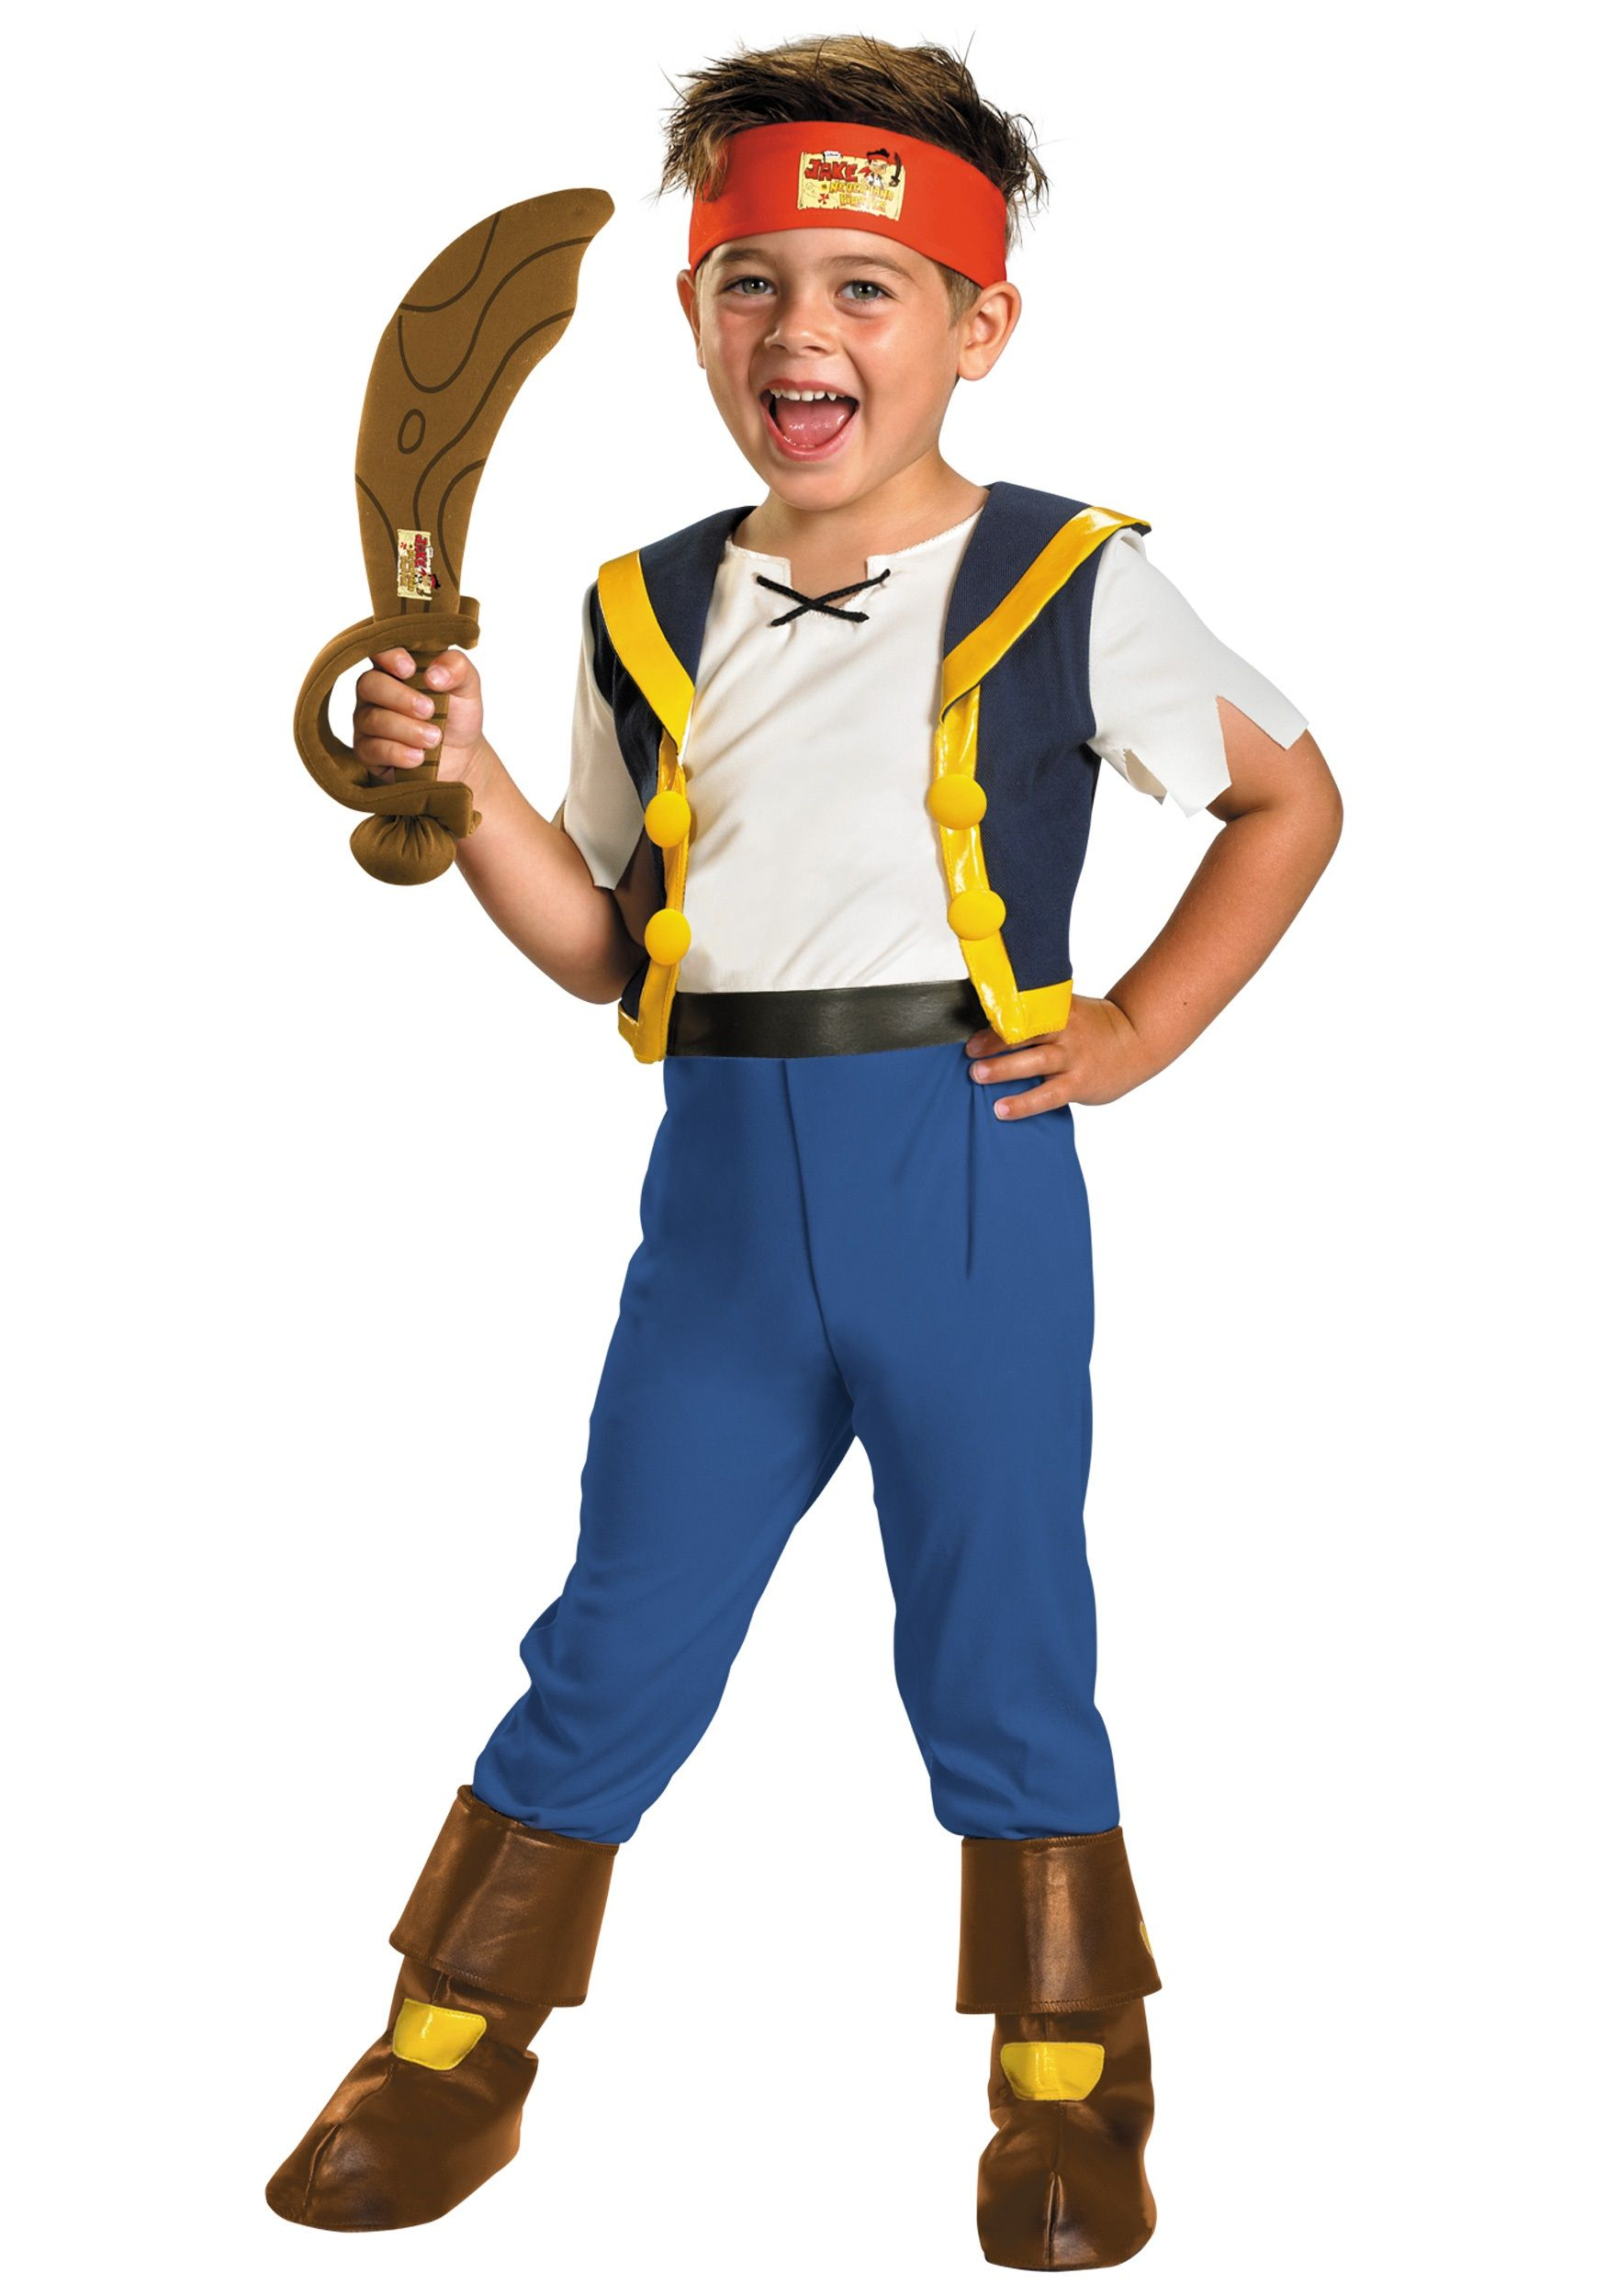 sibling halloween costumes boys | Toddler Jake Never Land Pirate ...